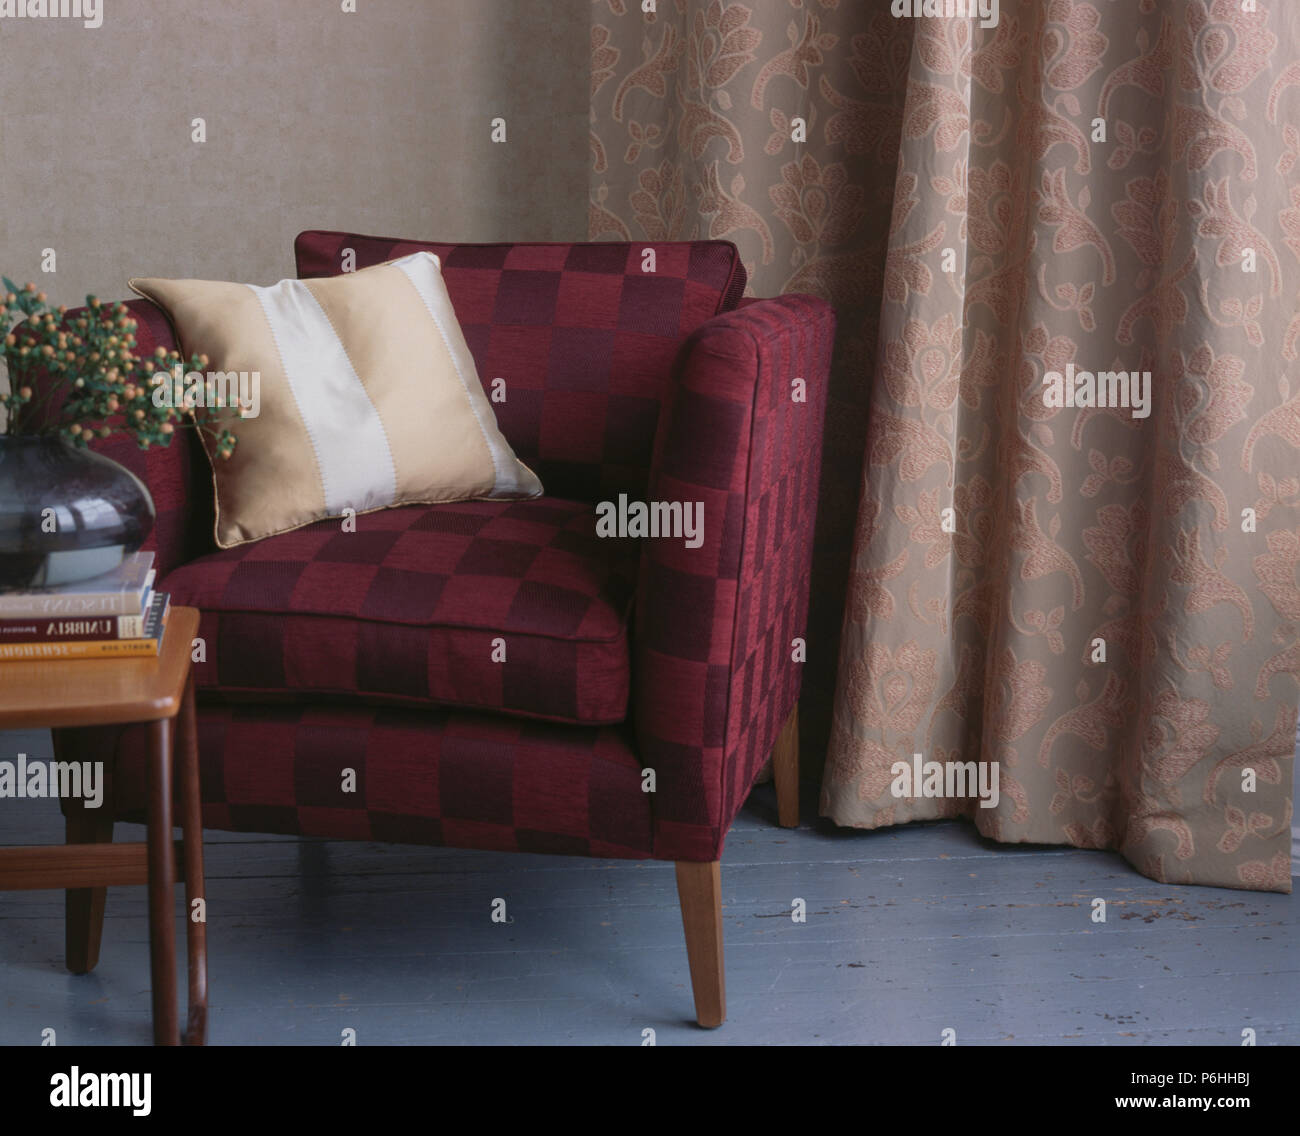 Striped beige cushion on upholstered maroon chair in front of textured floral curtains - Stock Image